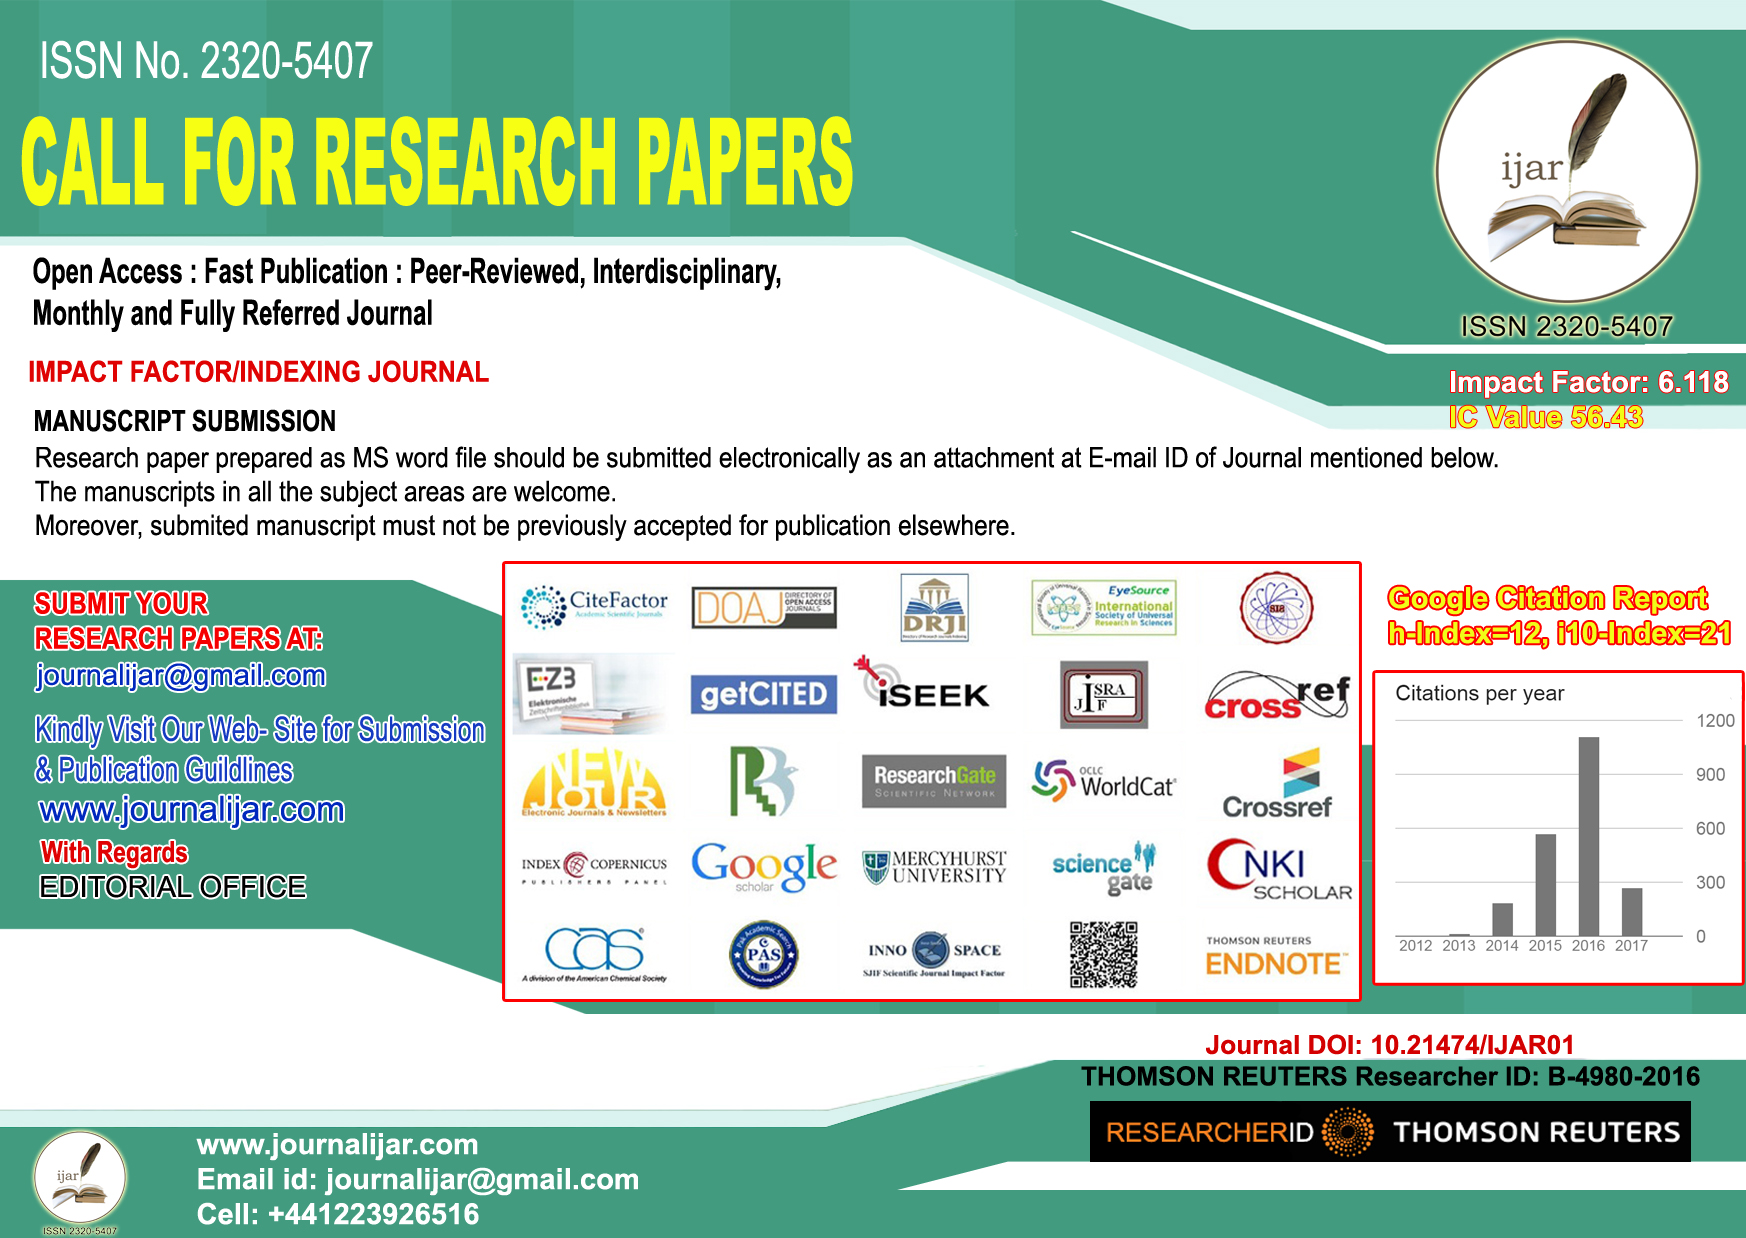 Call for papers: Combining Simulation and Empirical Research Methods in Operations Management